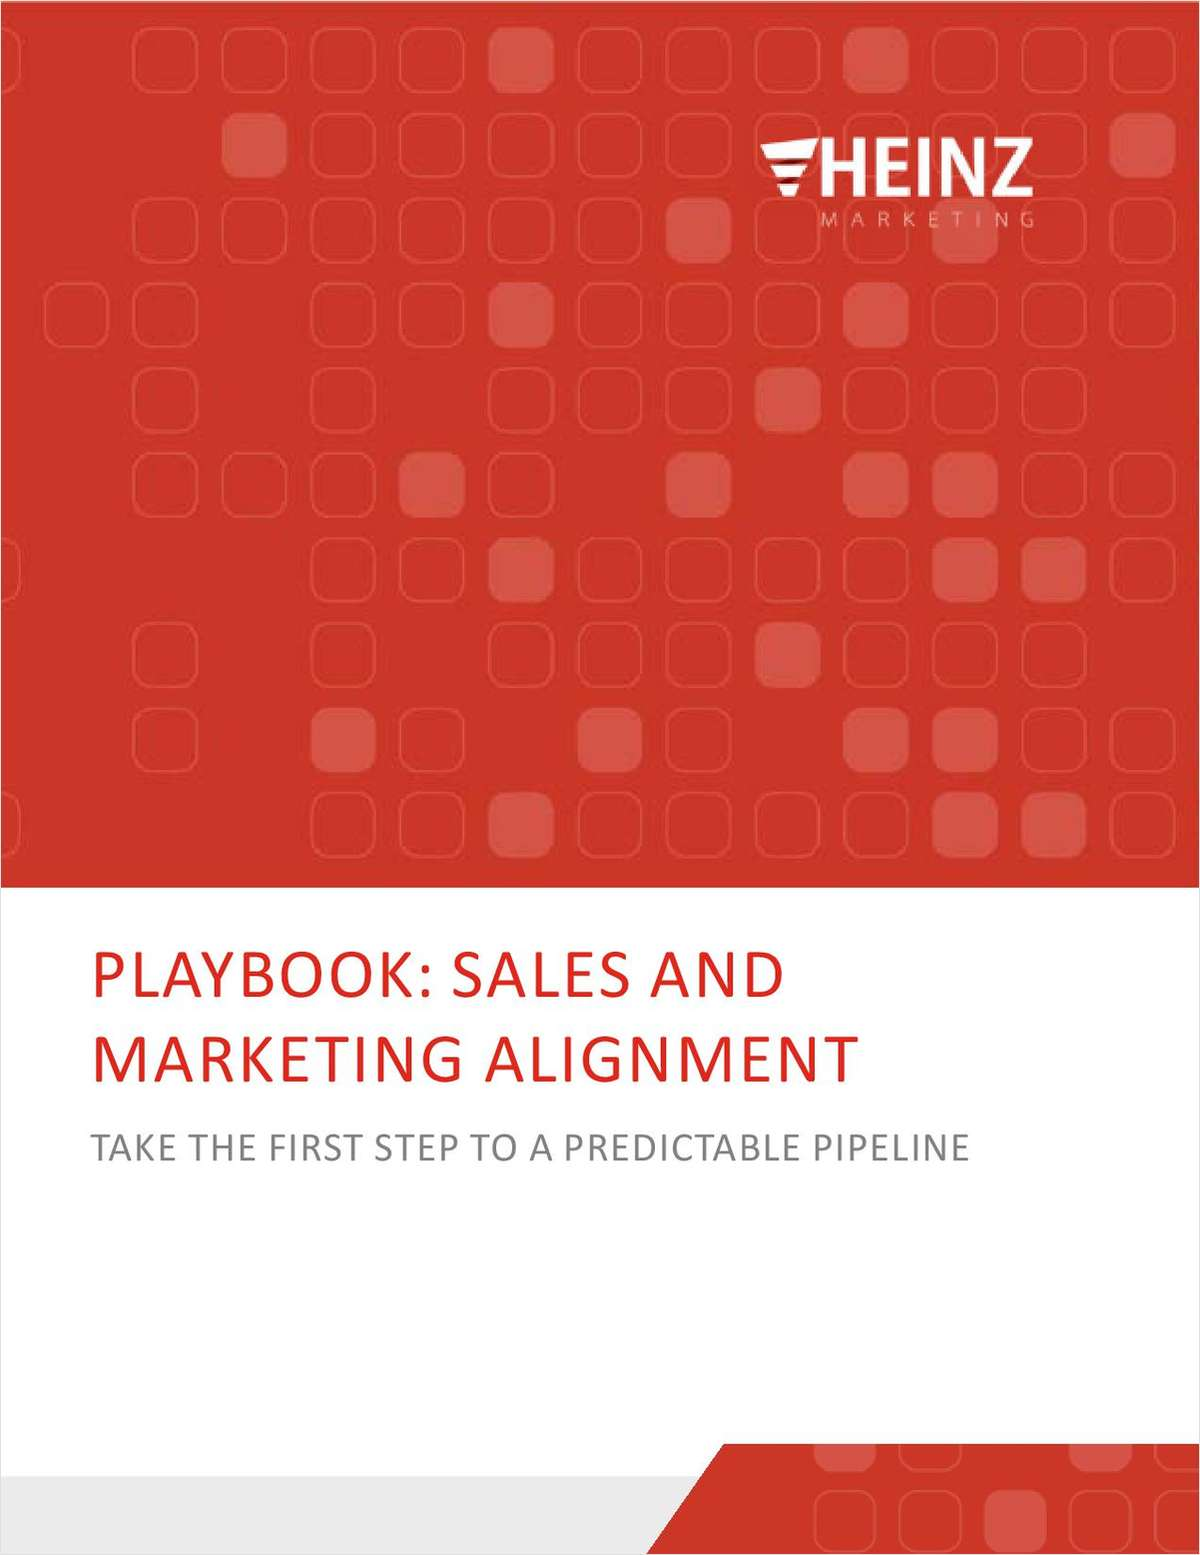 Playbook: Sales and Marketing Alignment